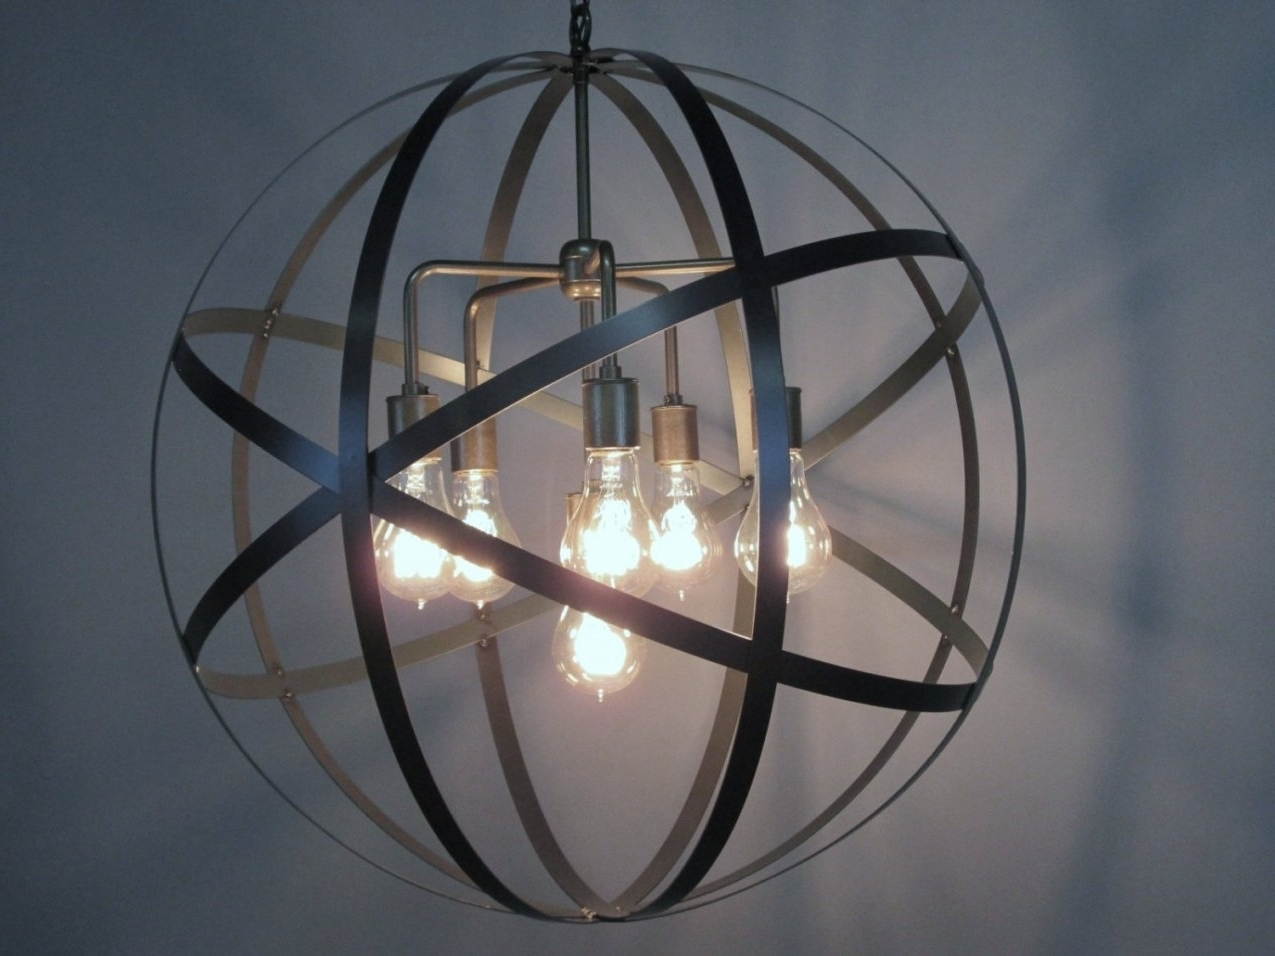 Orb Chandelier Within 2018 Accessories: Globe Metal Design Orb Chandelier With Lights Bulb (View 17 of 20)